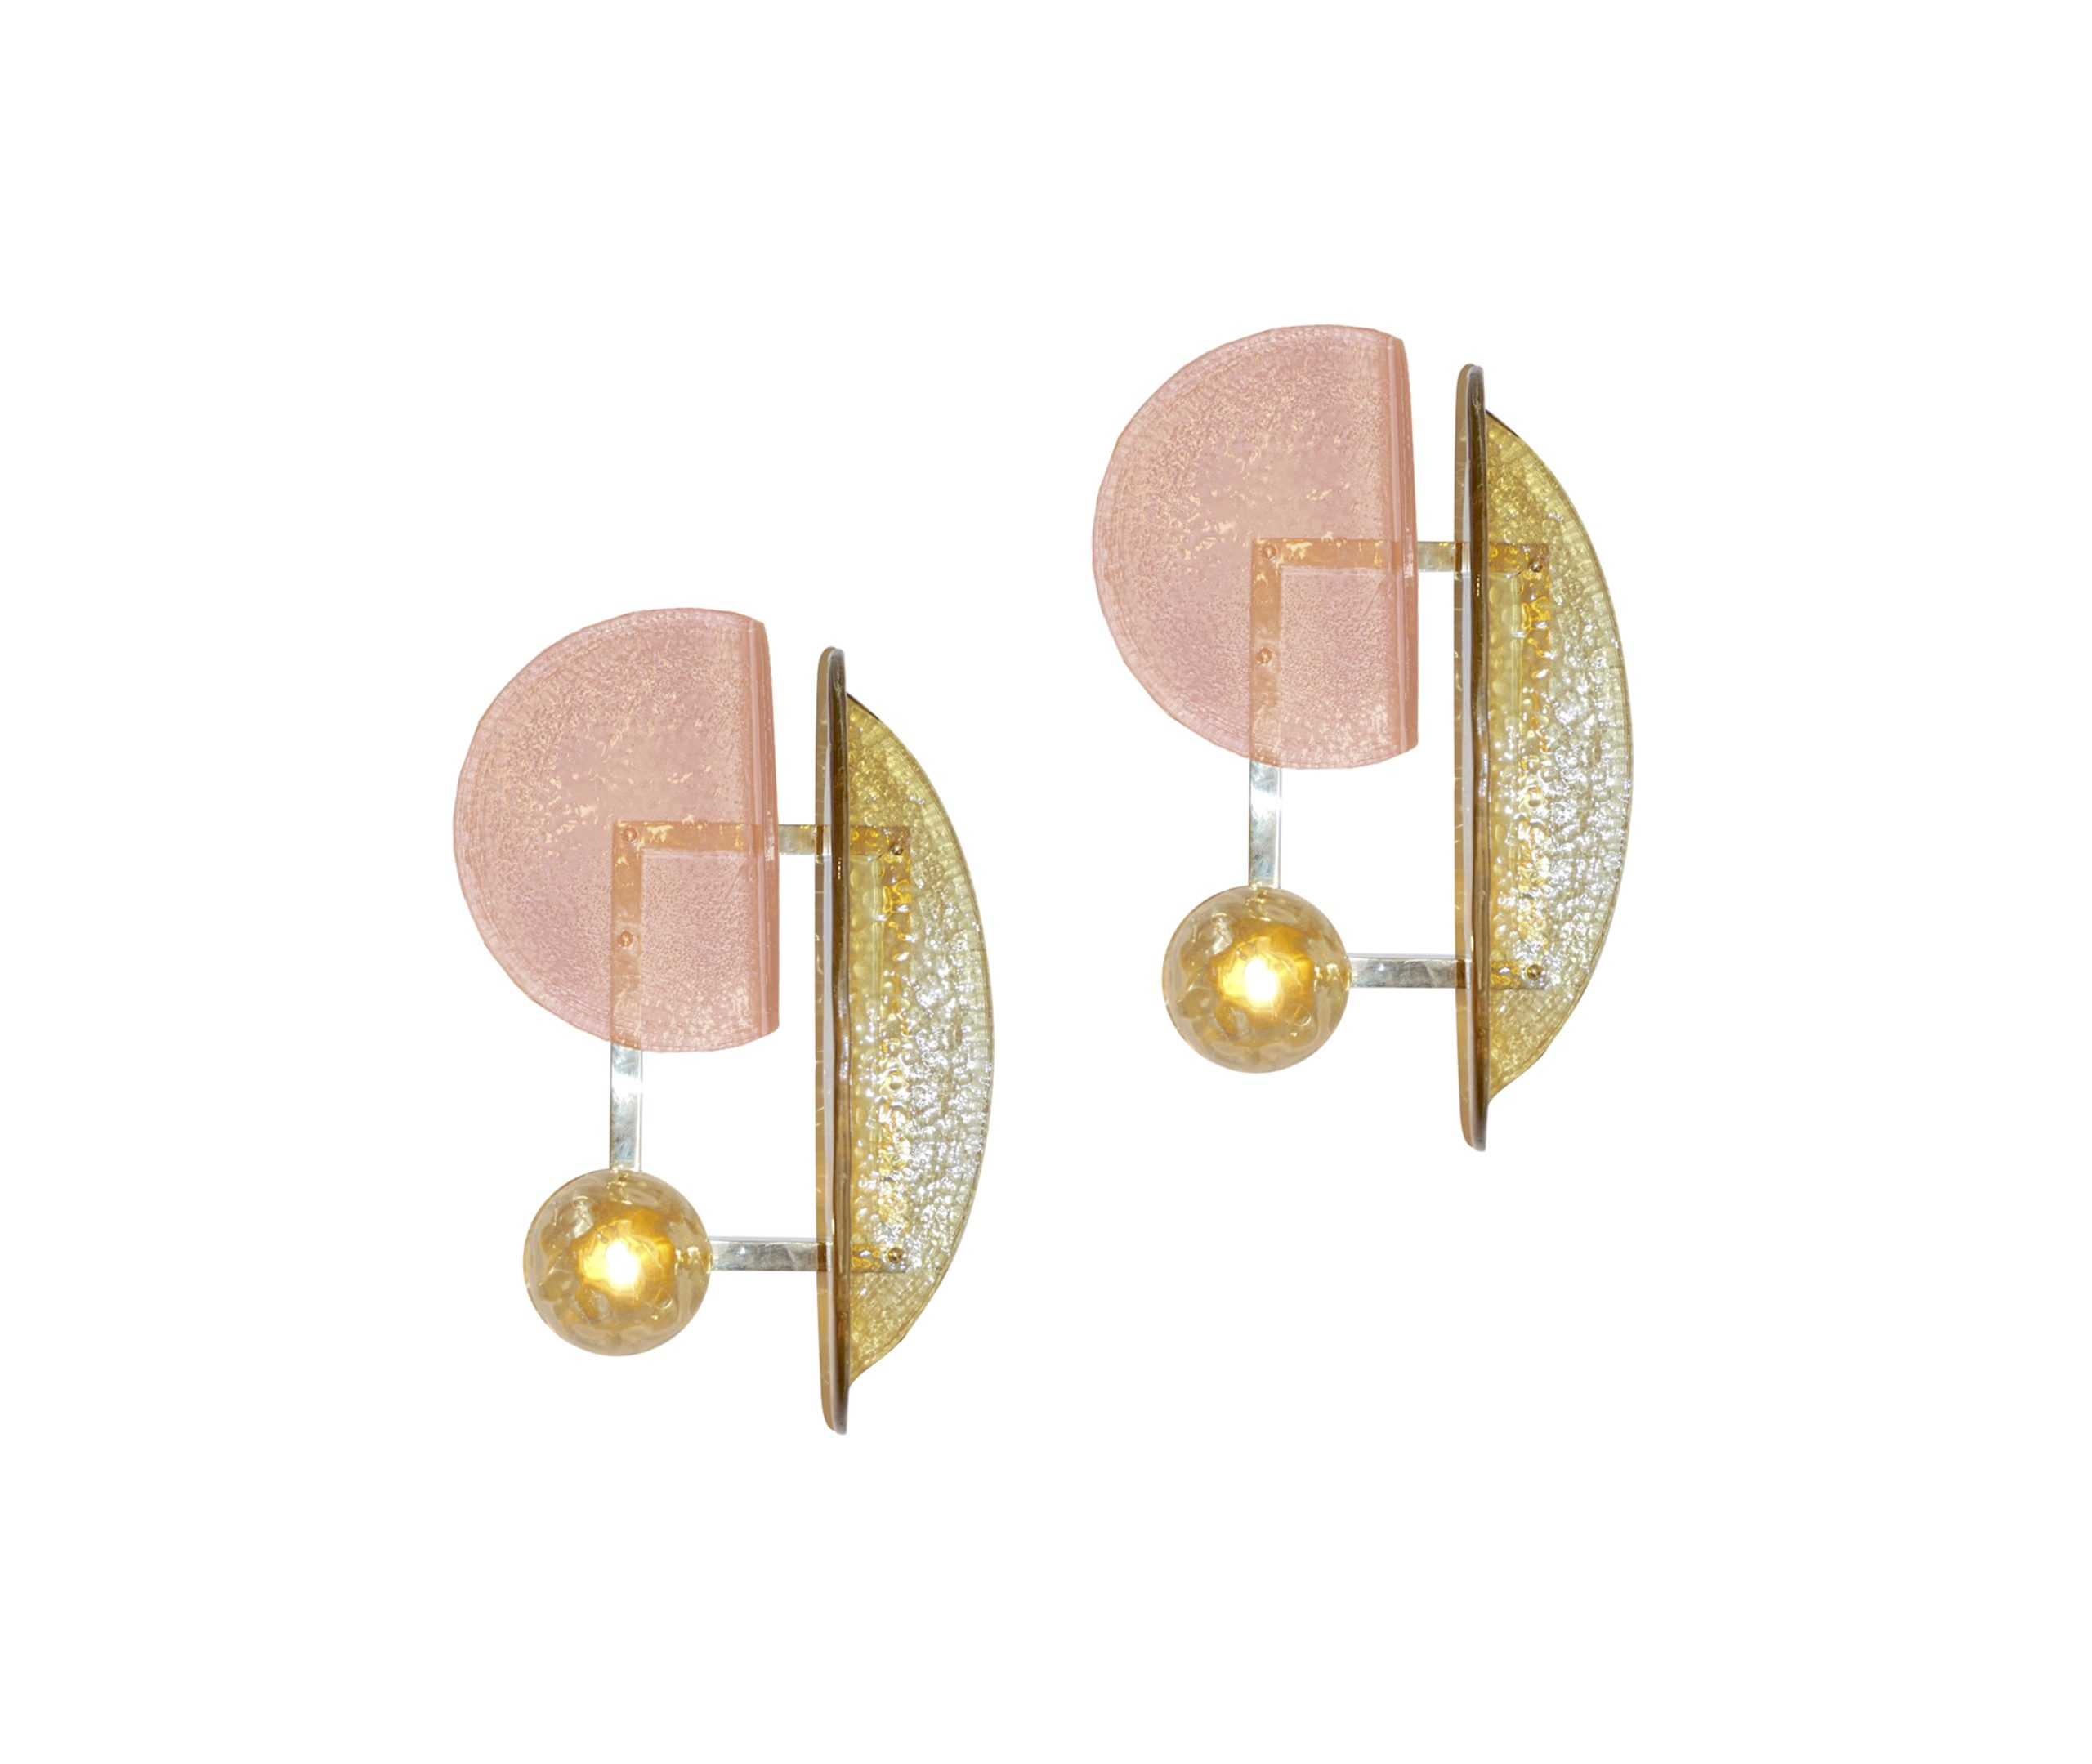 cosulich_interiors_and_antiques_products_new_york_design_contemporary_italian_pair_pink_amber_murano_glass_gold_brass_sconces-scaled-1